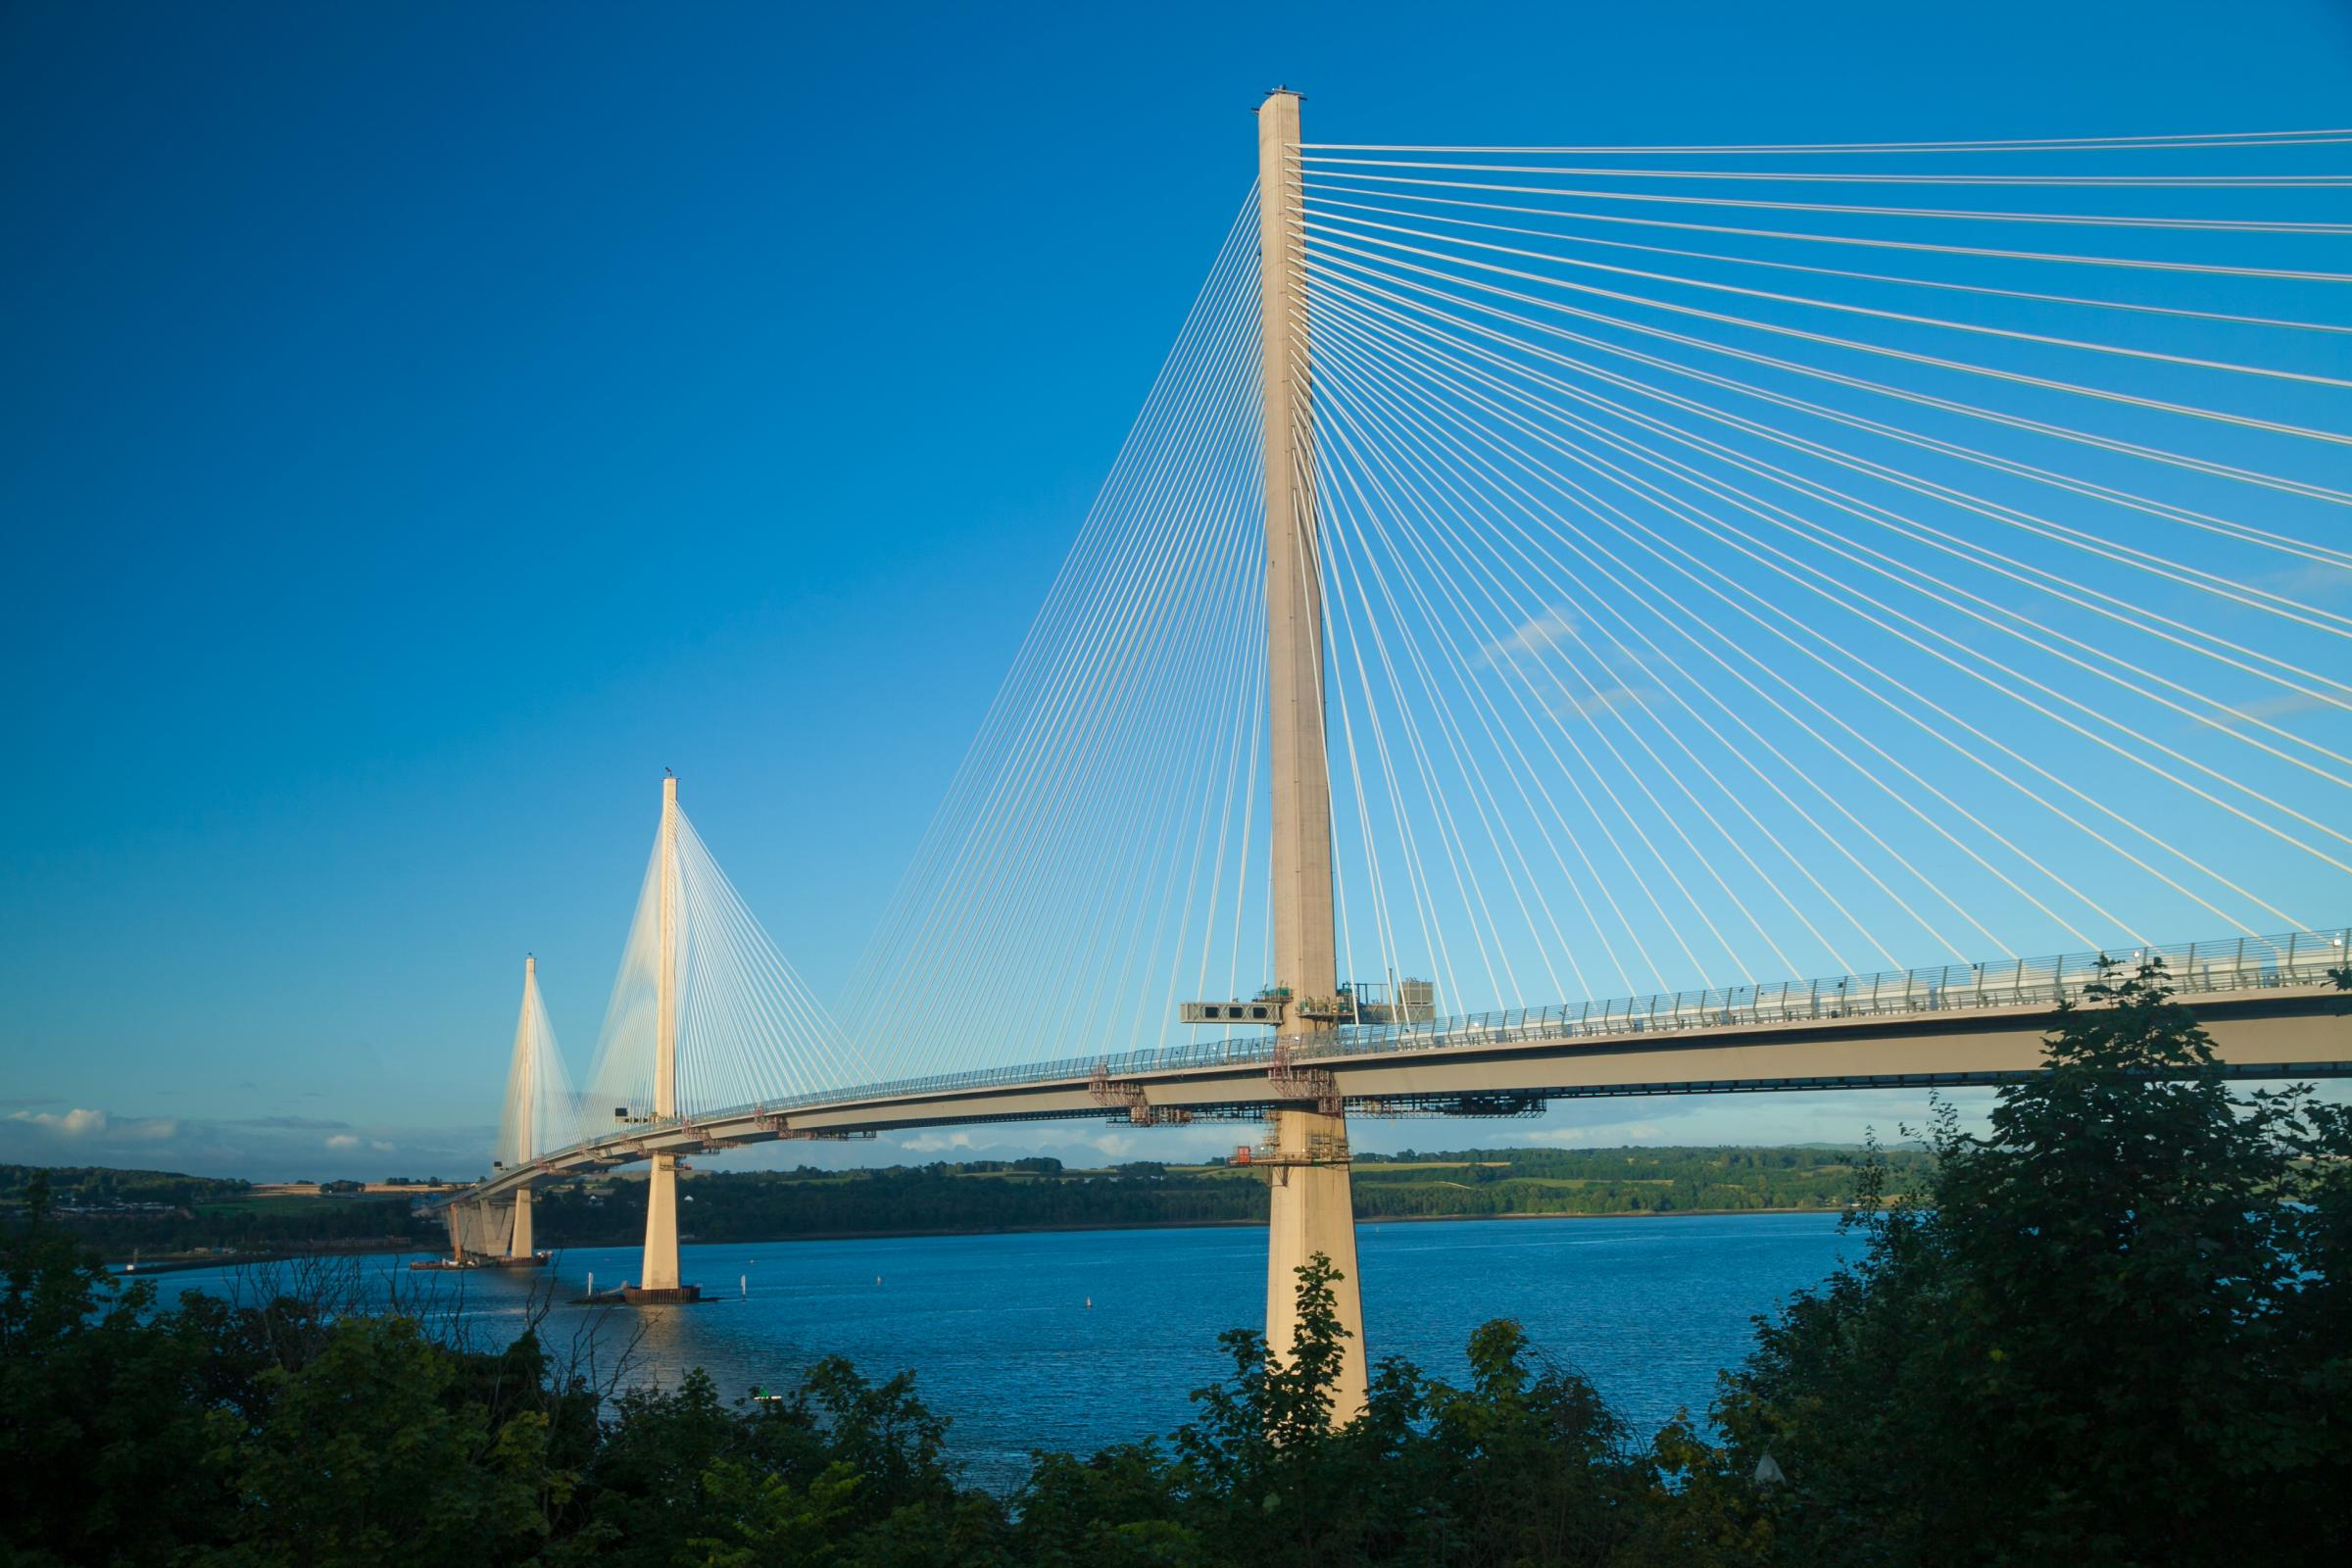 The Queensferry Crossing was able to remain open during high winds that would have restricted traffic on the Forth Road Bridge